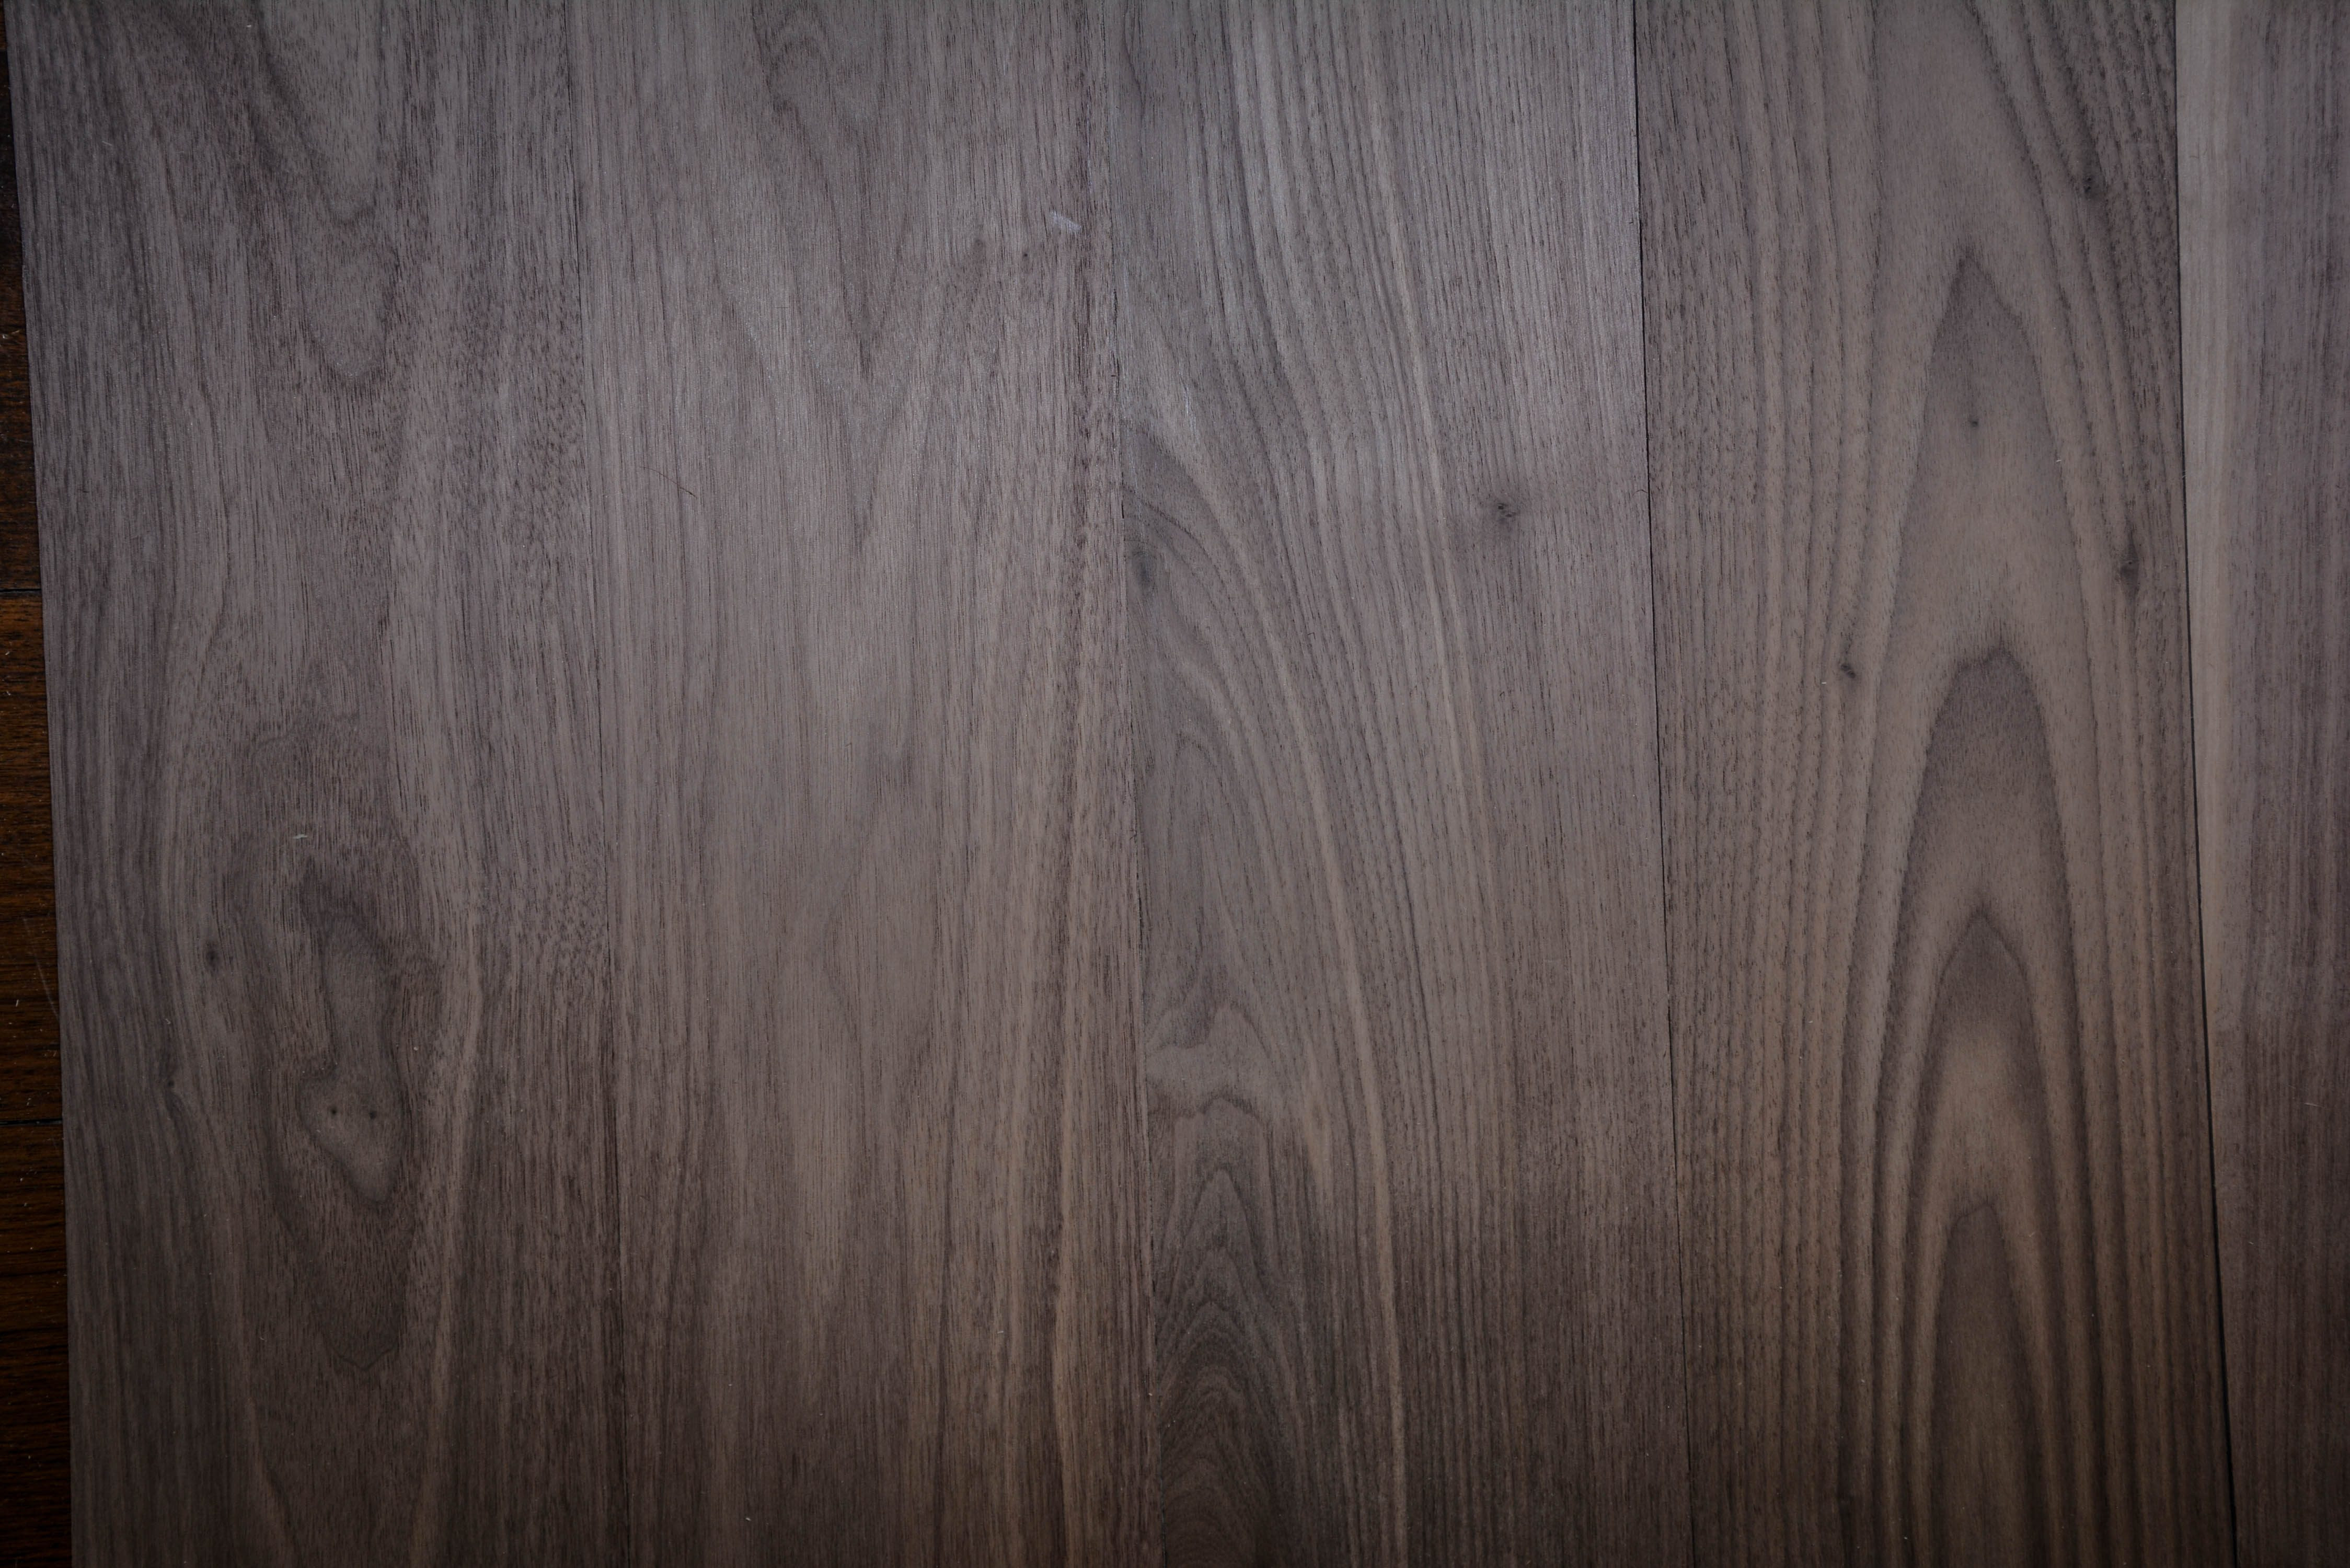 Character Grade Walnut Hardwood Flooring Of Graf Brothers Flooring Grade Inside Zoomview0 Likes